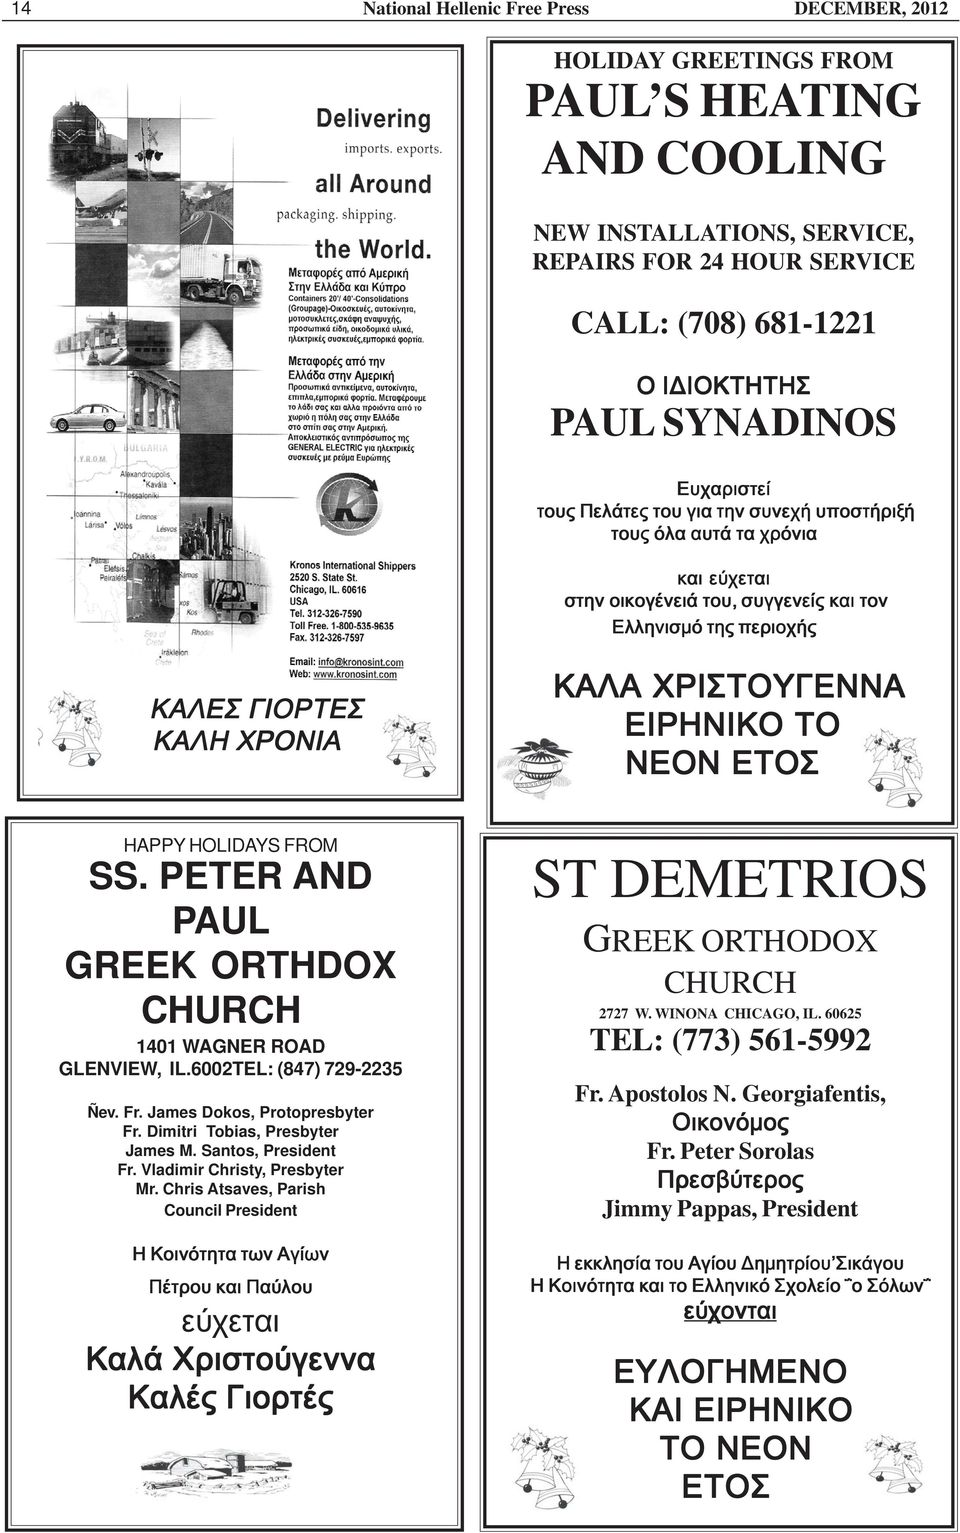 ΧΡΙΣΤΟΥΓΕΝΝΑ ΕΙΡΗΝΙΚΟ ΤΟ ΝΕΟΝ ΕΤΟΣ HAPPY HOLIDAYS FROM SS. PETER AND PAUL GREEK ORTHDOX CHURCH 1401 WAGNER ROAD GLENVIEW, IL.6002TEL: (847) 729-2235 Ñev. Fr. James Dokos, Protopresbyter Fr.